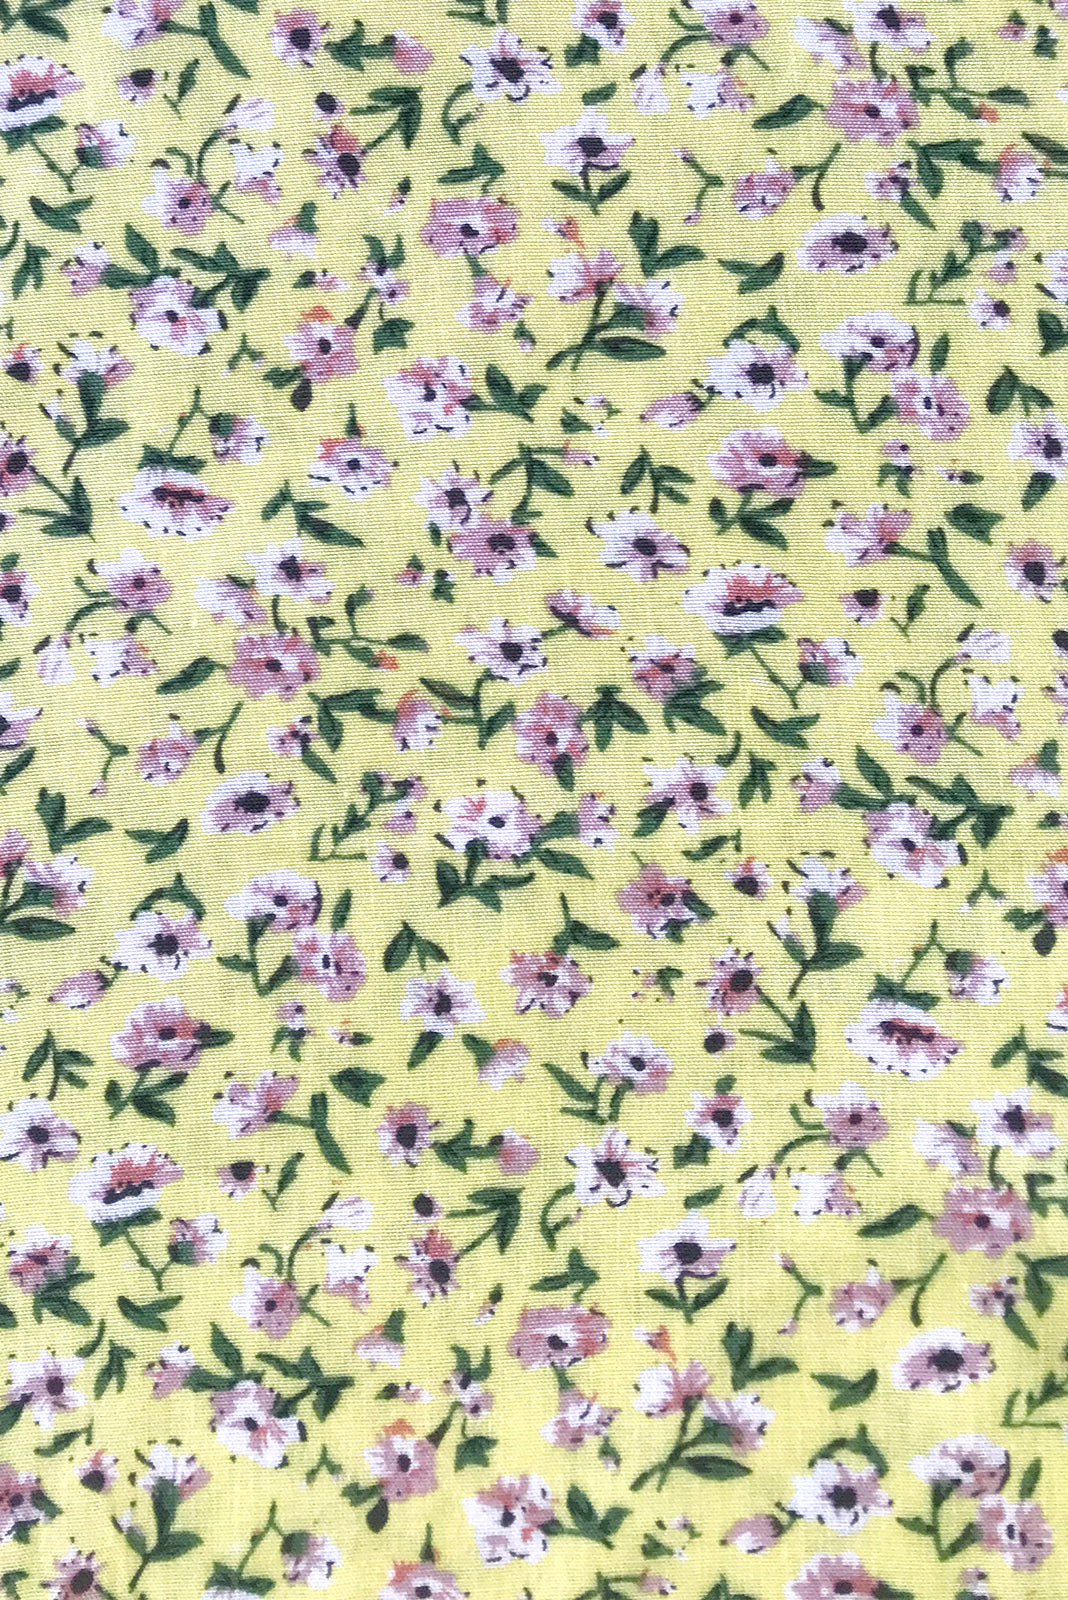 Fabric swatch of Peggy Canary Yellow Dress featuring 100% viscose in yellow base with ditzy floral print.